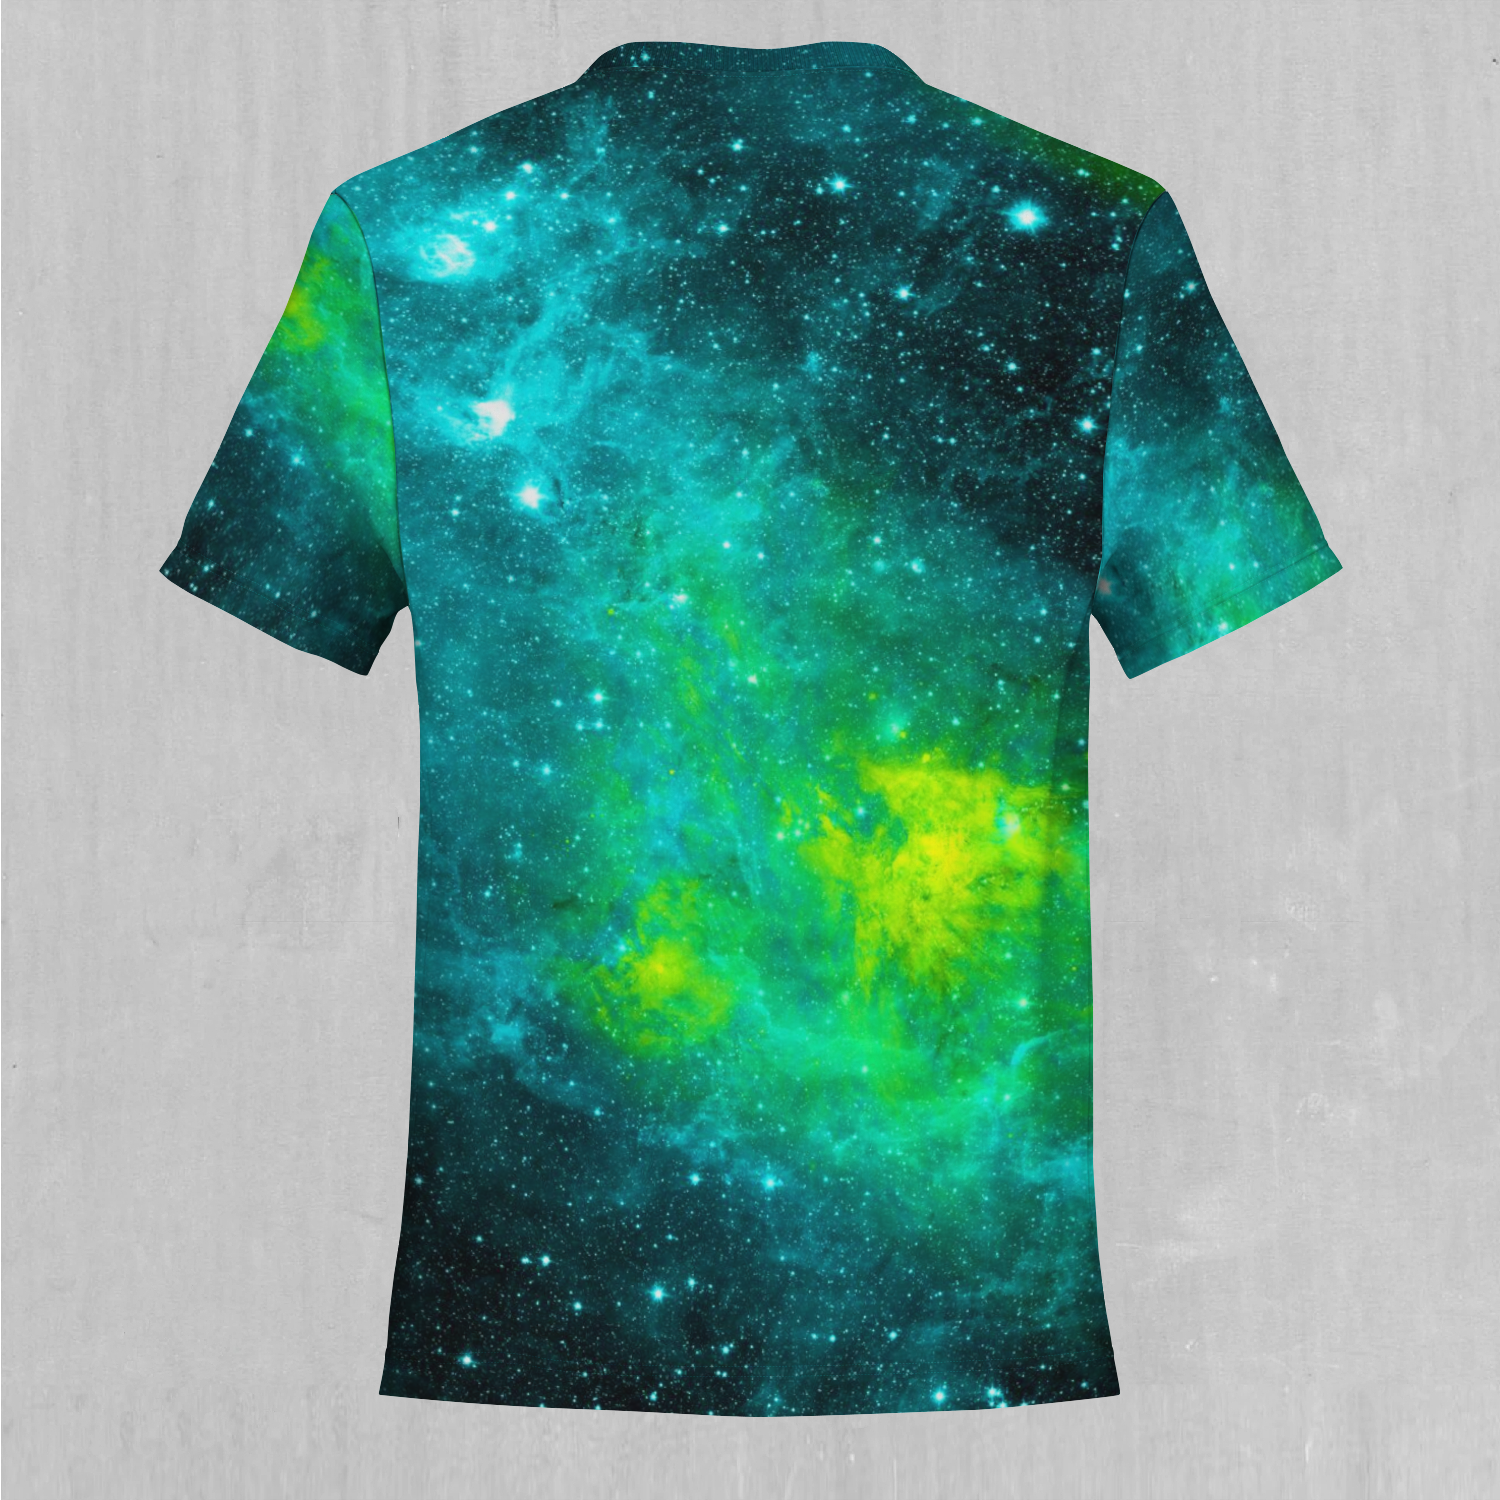 Acidic Realm Tee - Azimuth Clothing